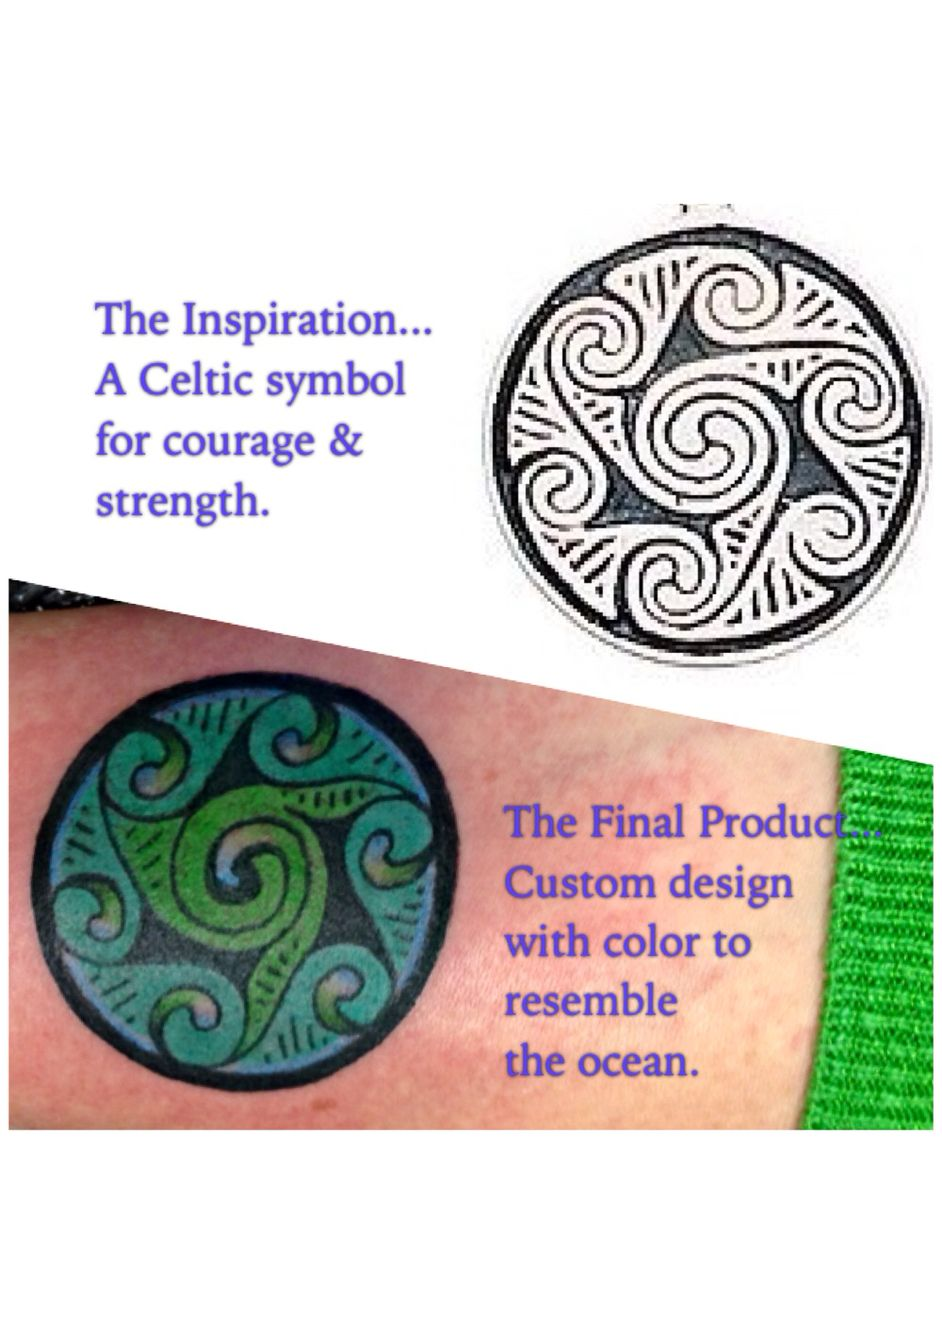 First tattoo done custom tattoo inspired by celtic symbols for inspired by celtic symbols for strength and courage biocorpaavc Gallery